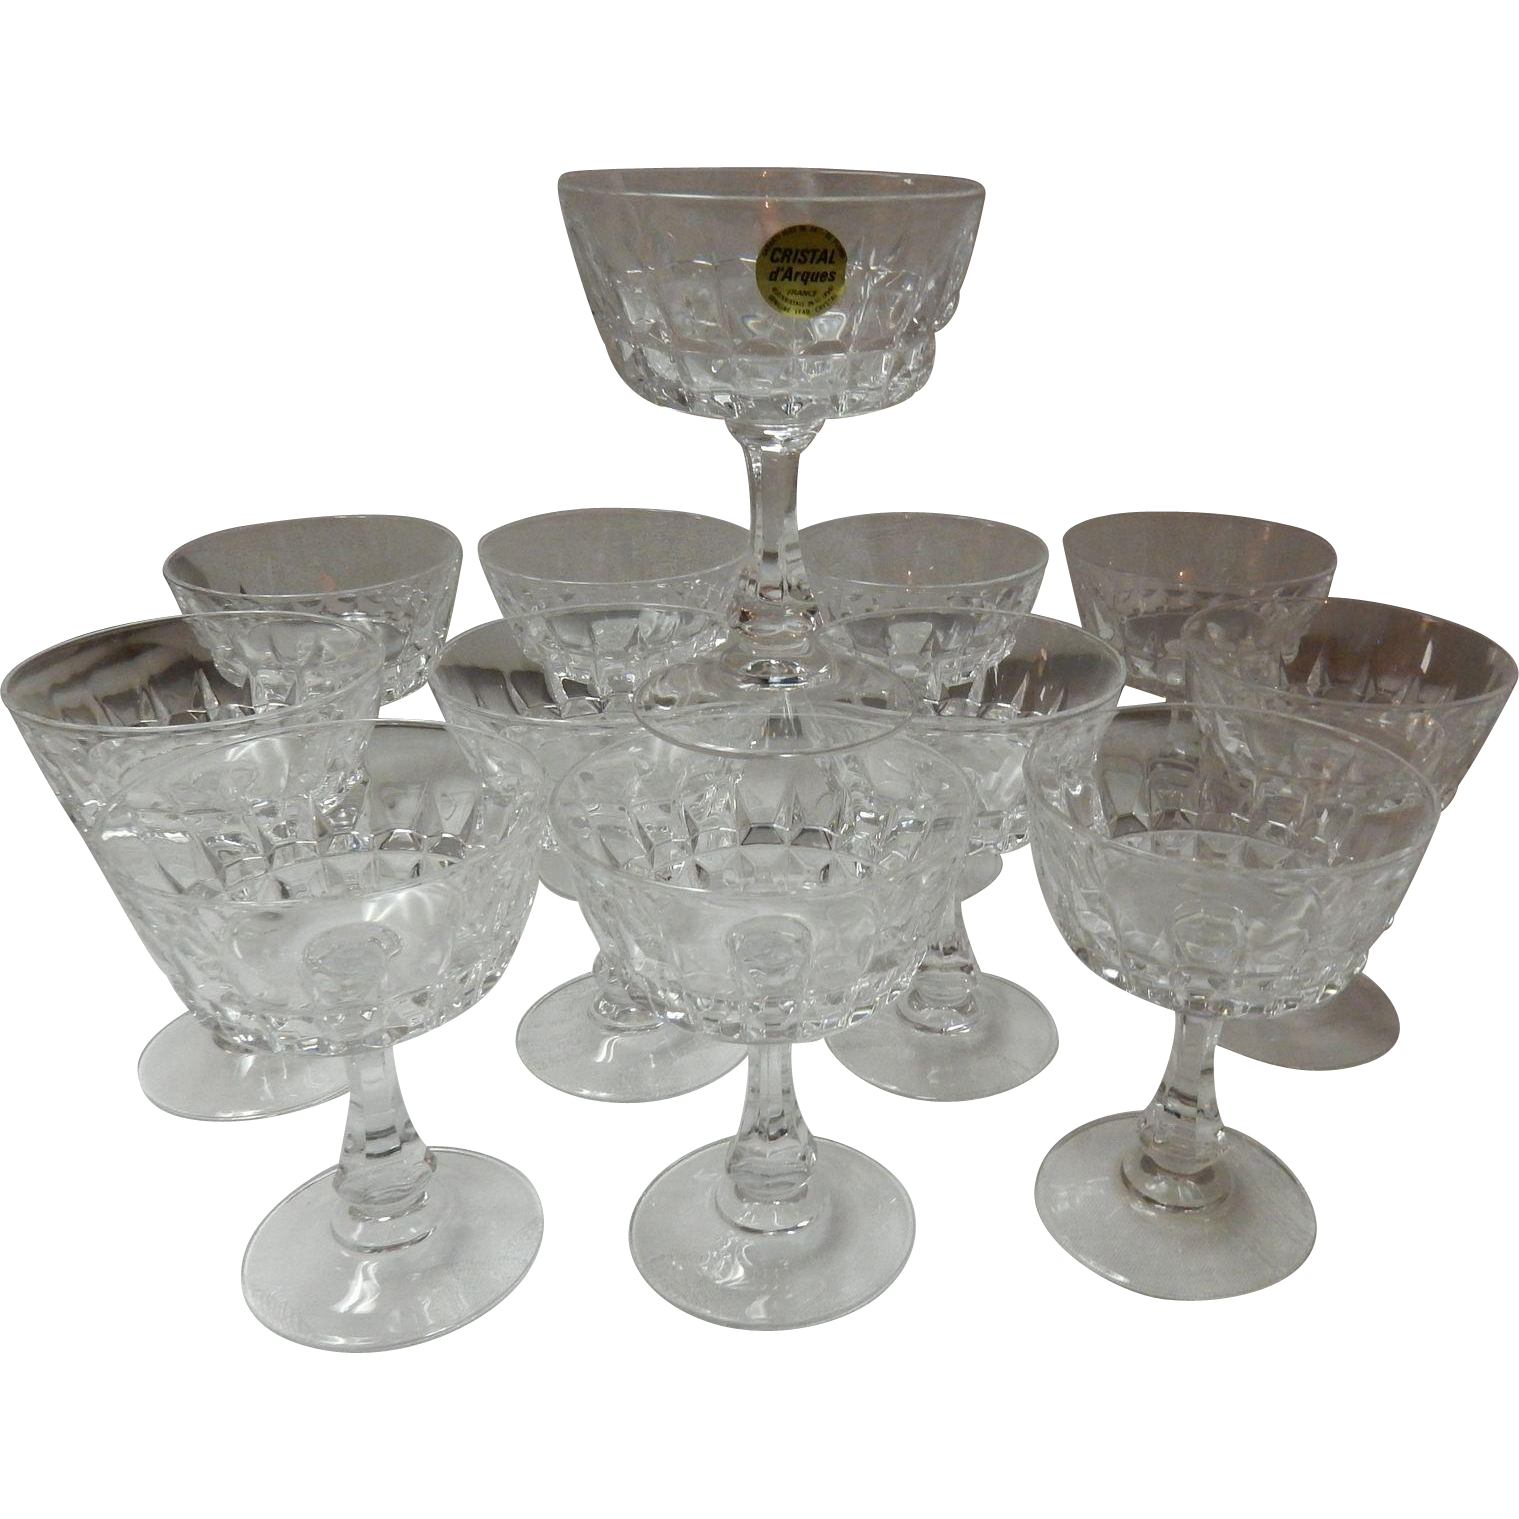 Set Of 12 Longchamp Crystal Champagne / Sherbet Glasses By Cristal D'Argues - Durand